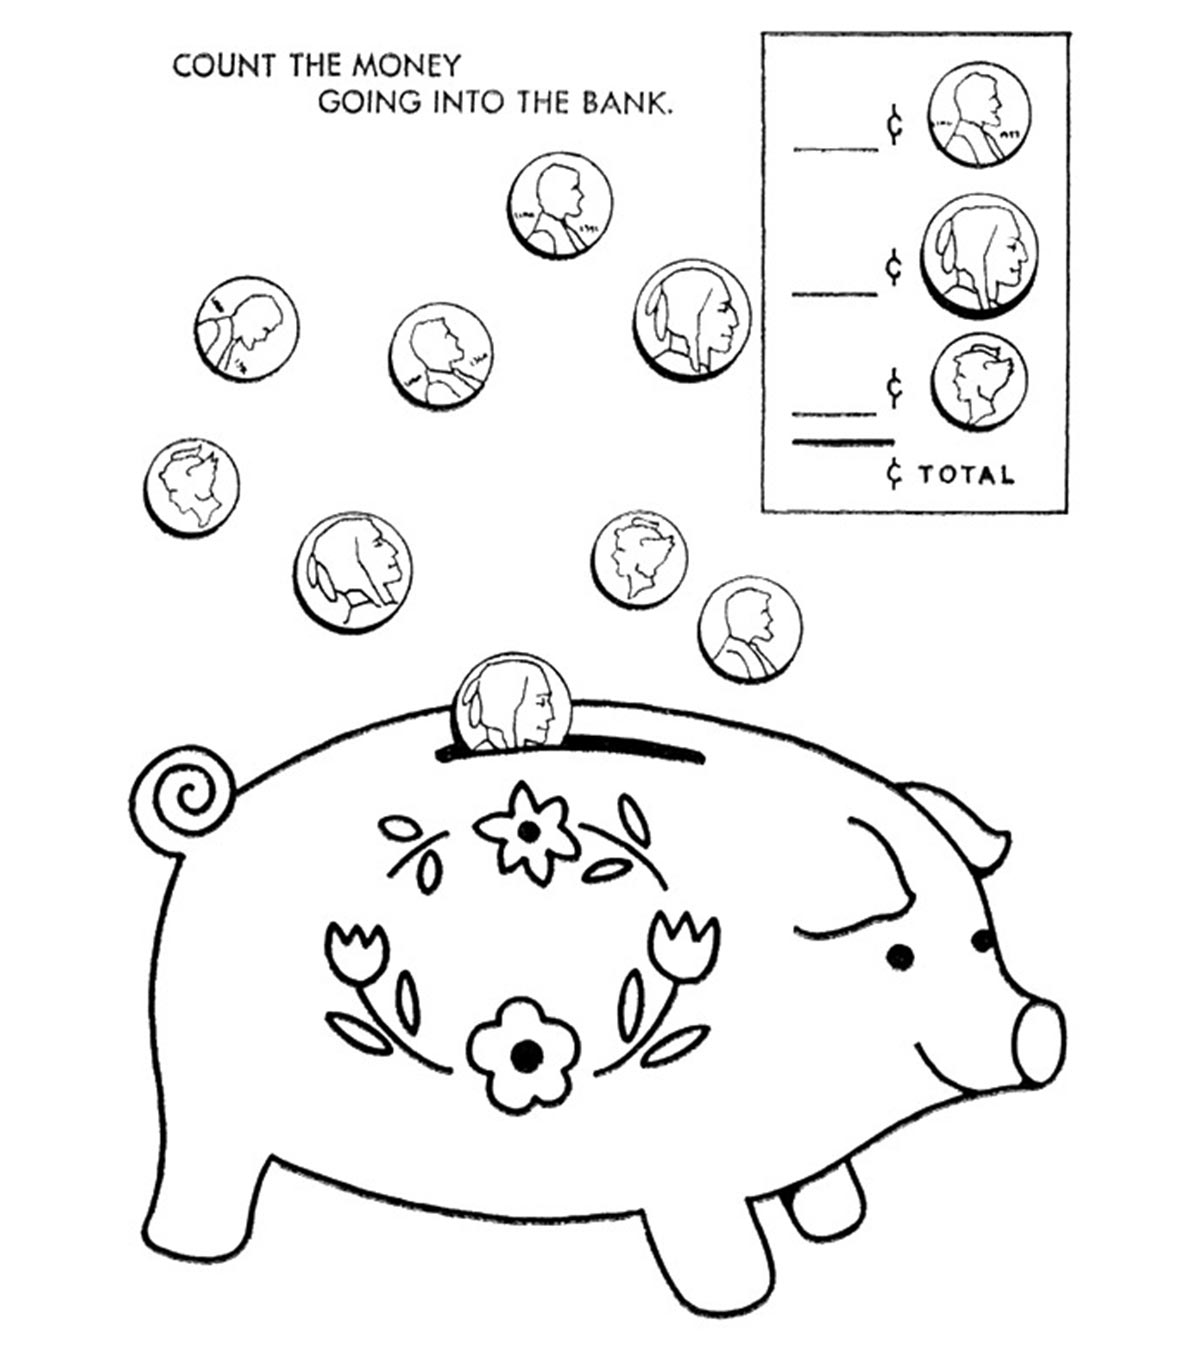 Organic Funeral Services Piggy Banks That Count Your Money